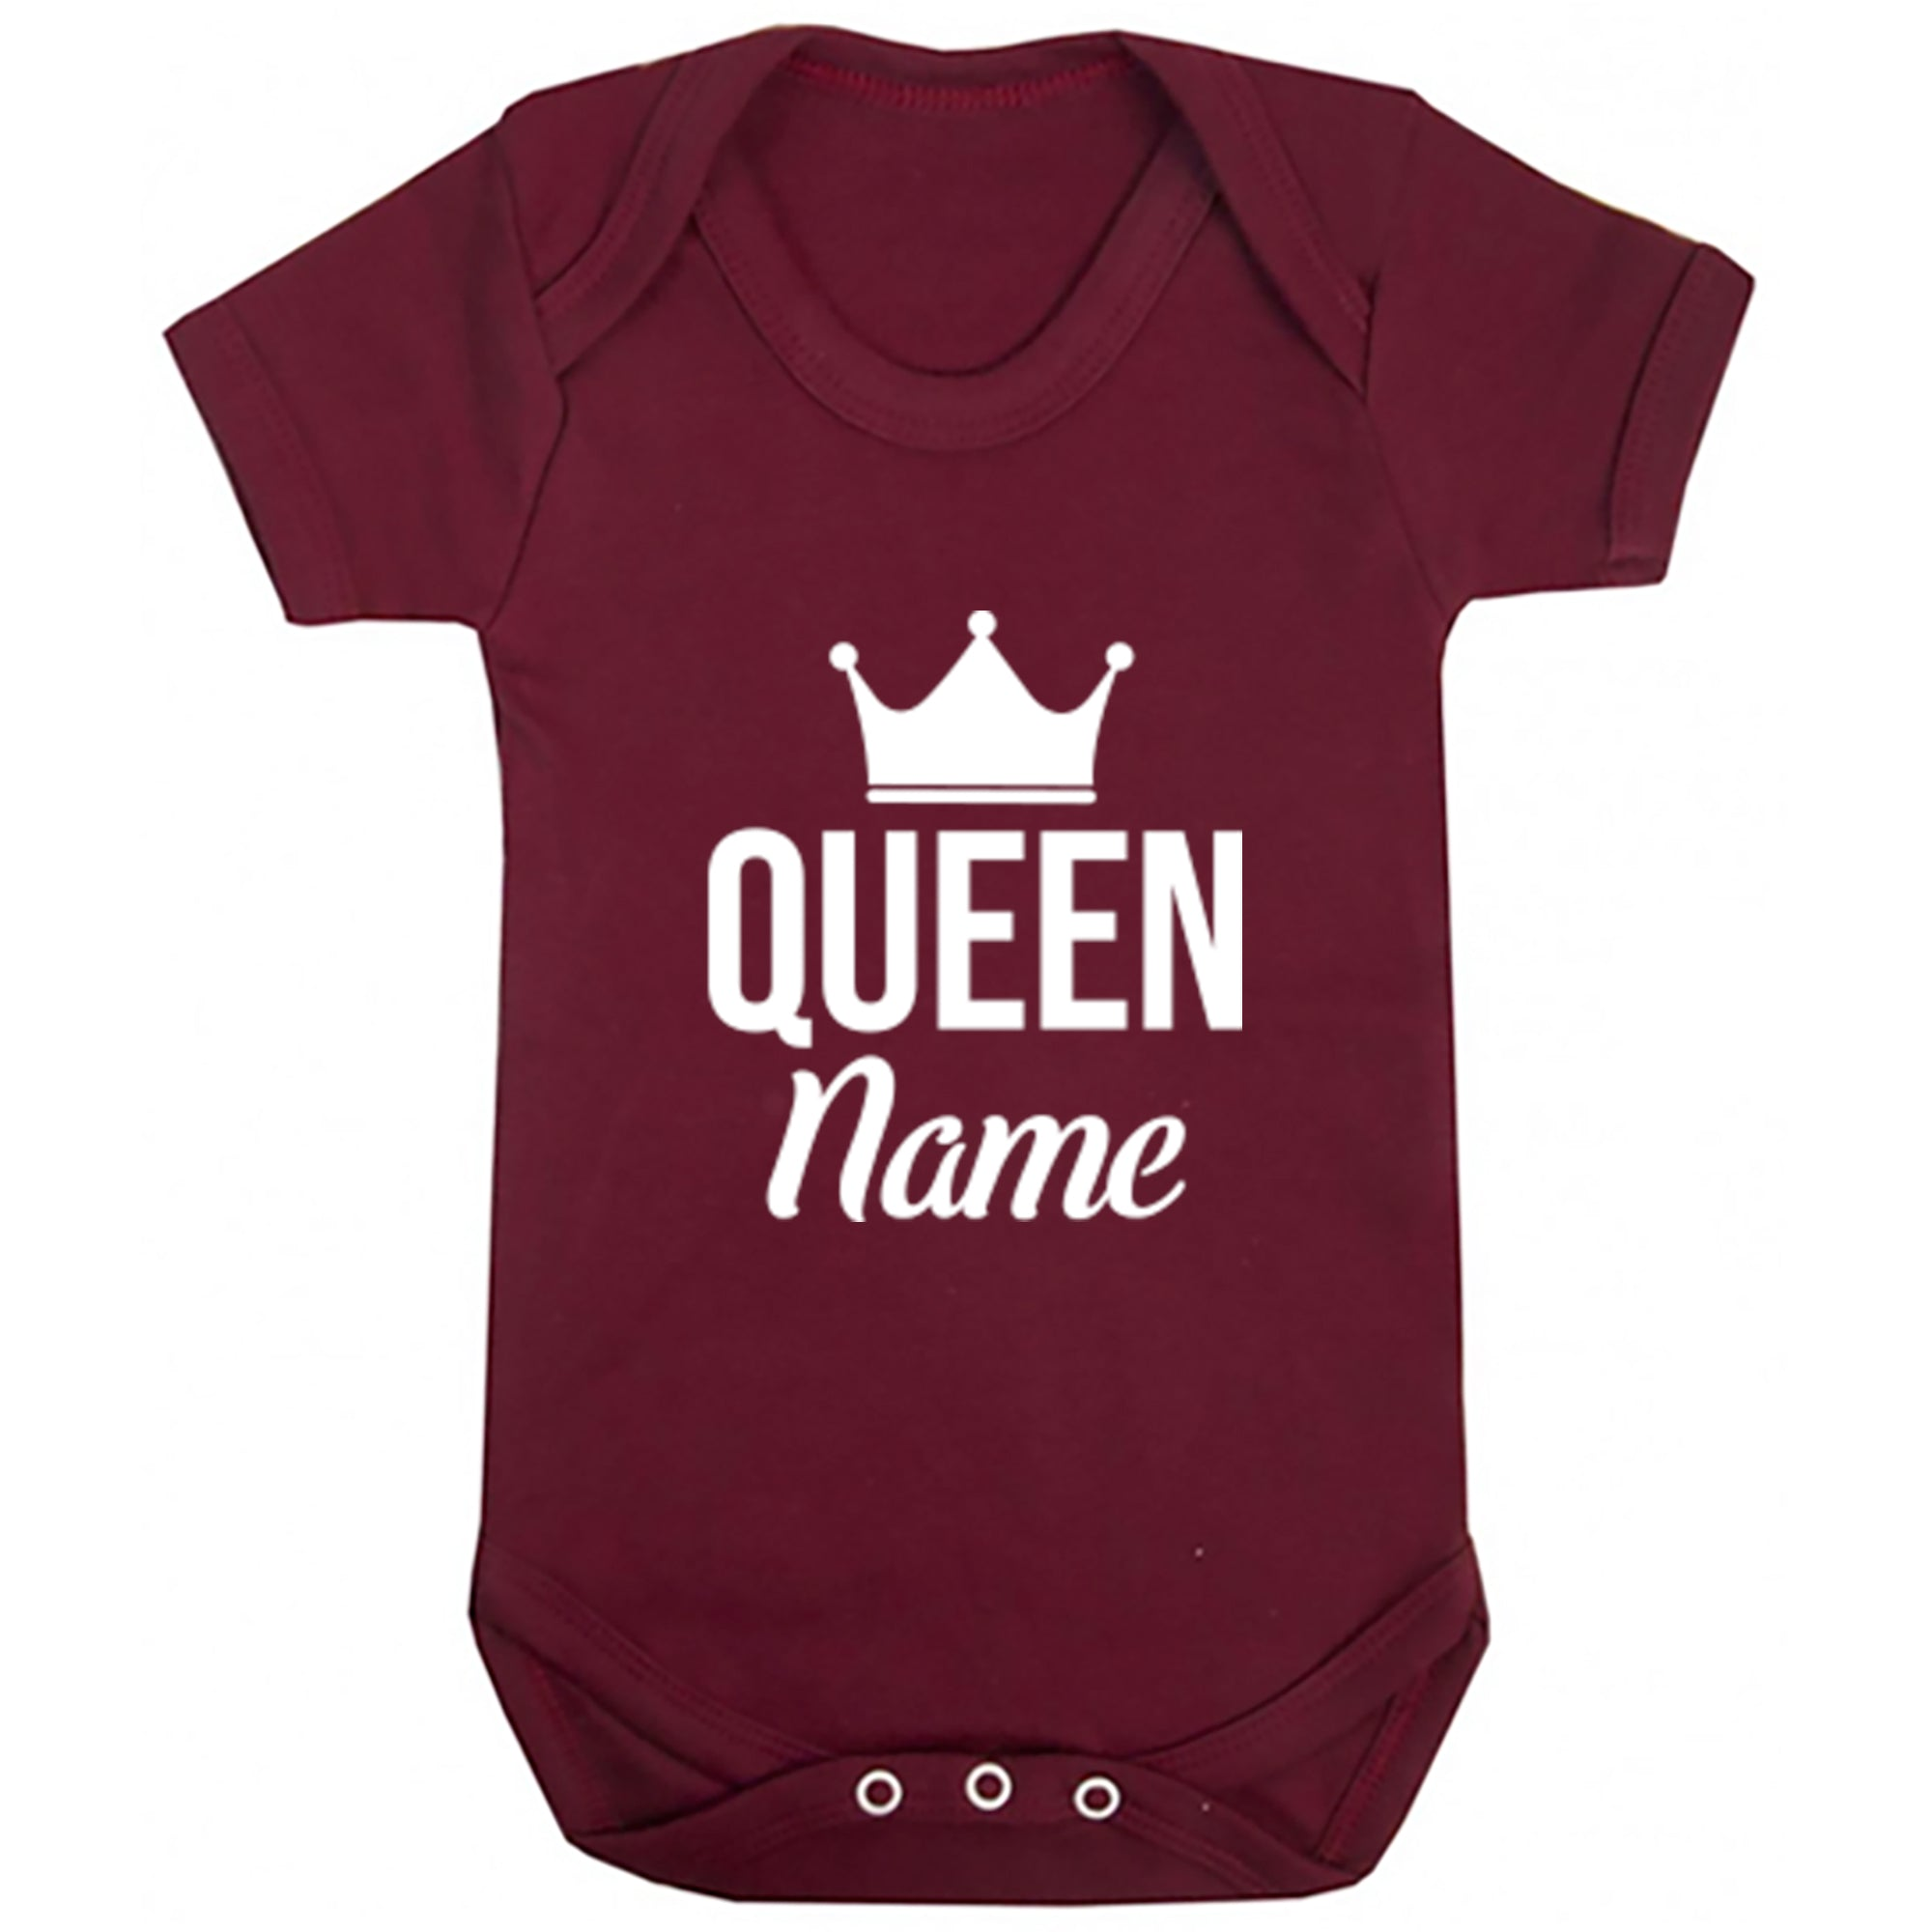 Personalised Queen Design Baby Vest S0465 - Illustrated Identity Ltd.